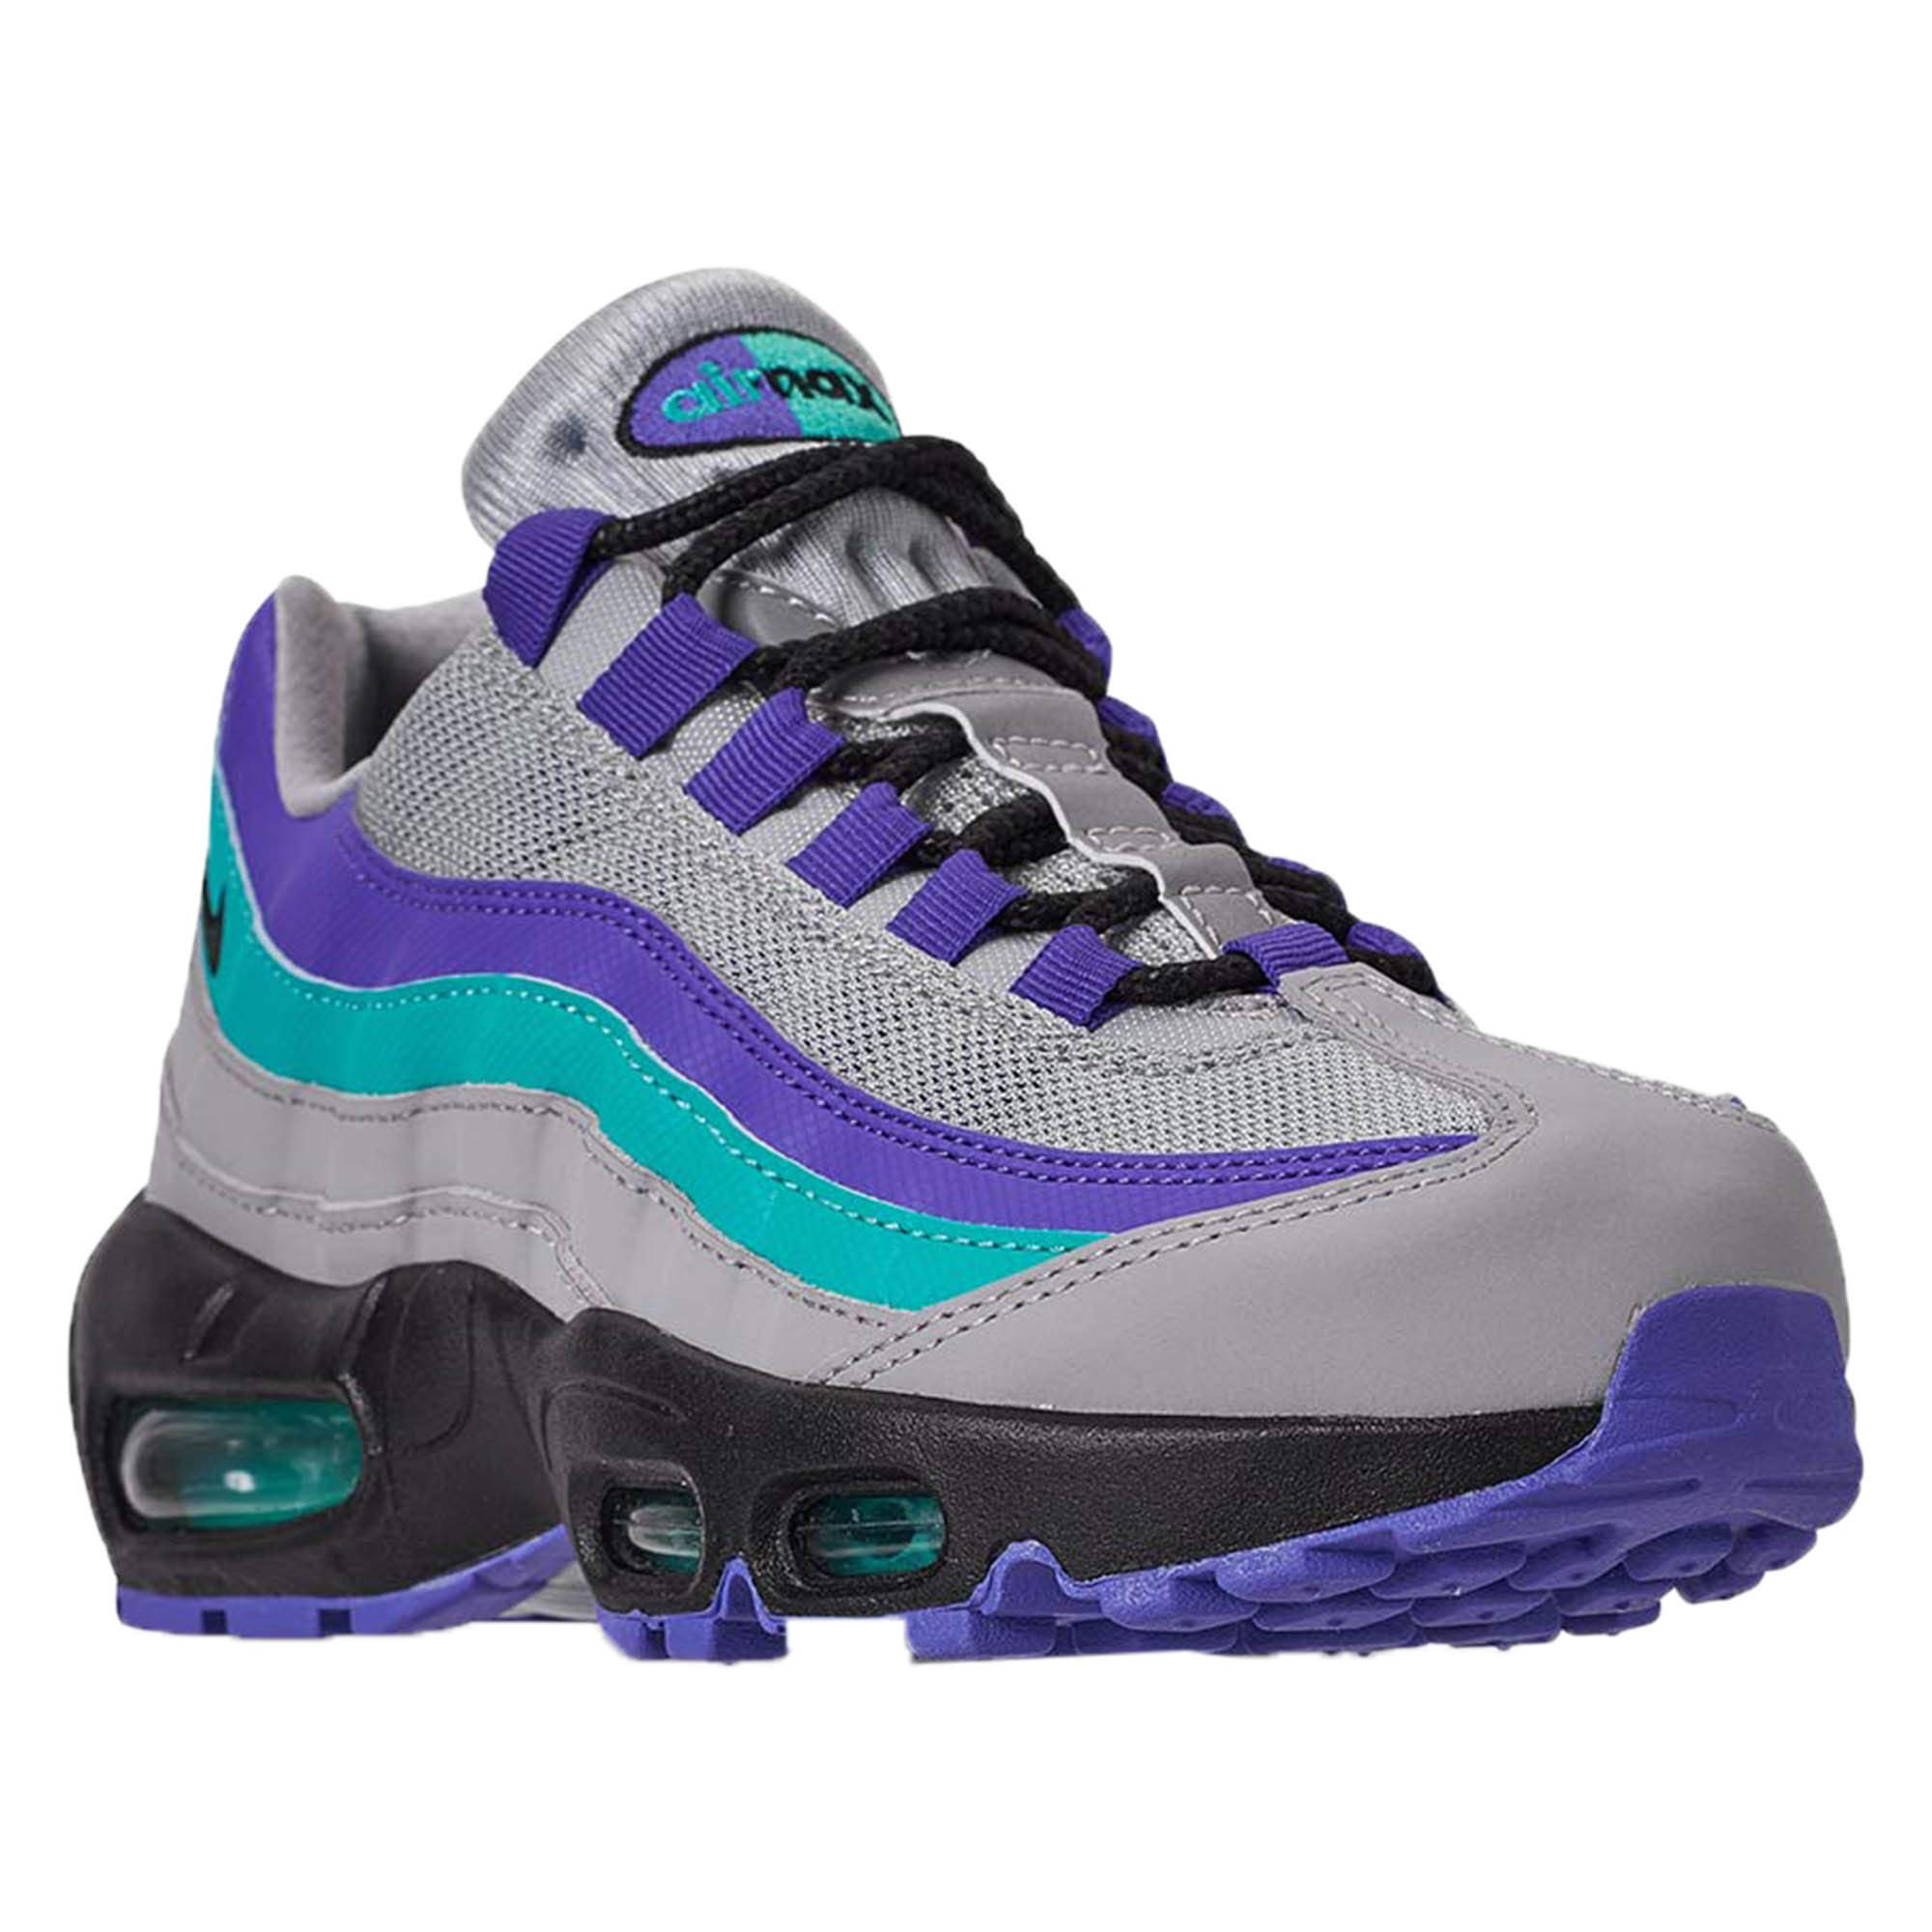 separation shoes 6426b 0dab6 Galleon - Nike Air Max 95 Og Mens Style   AT2865-001 Size   8.5 M US